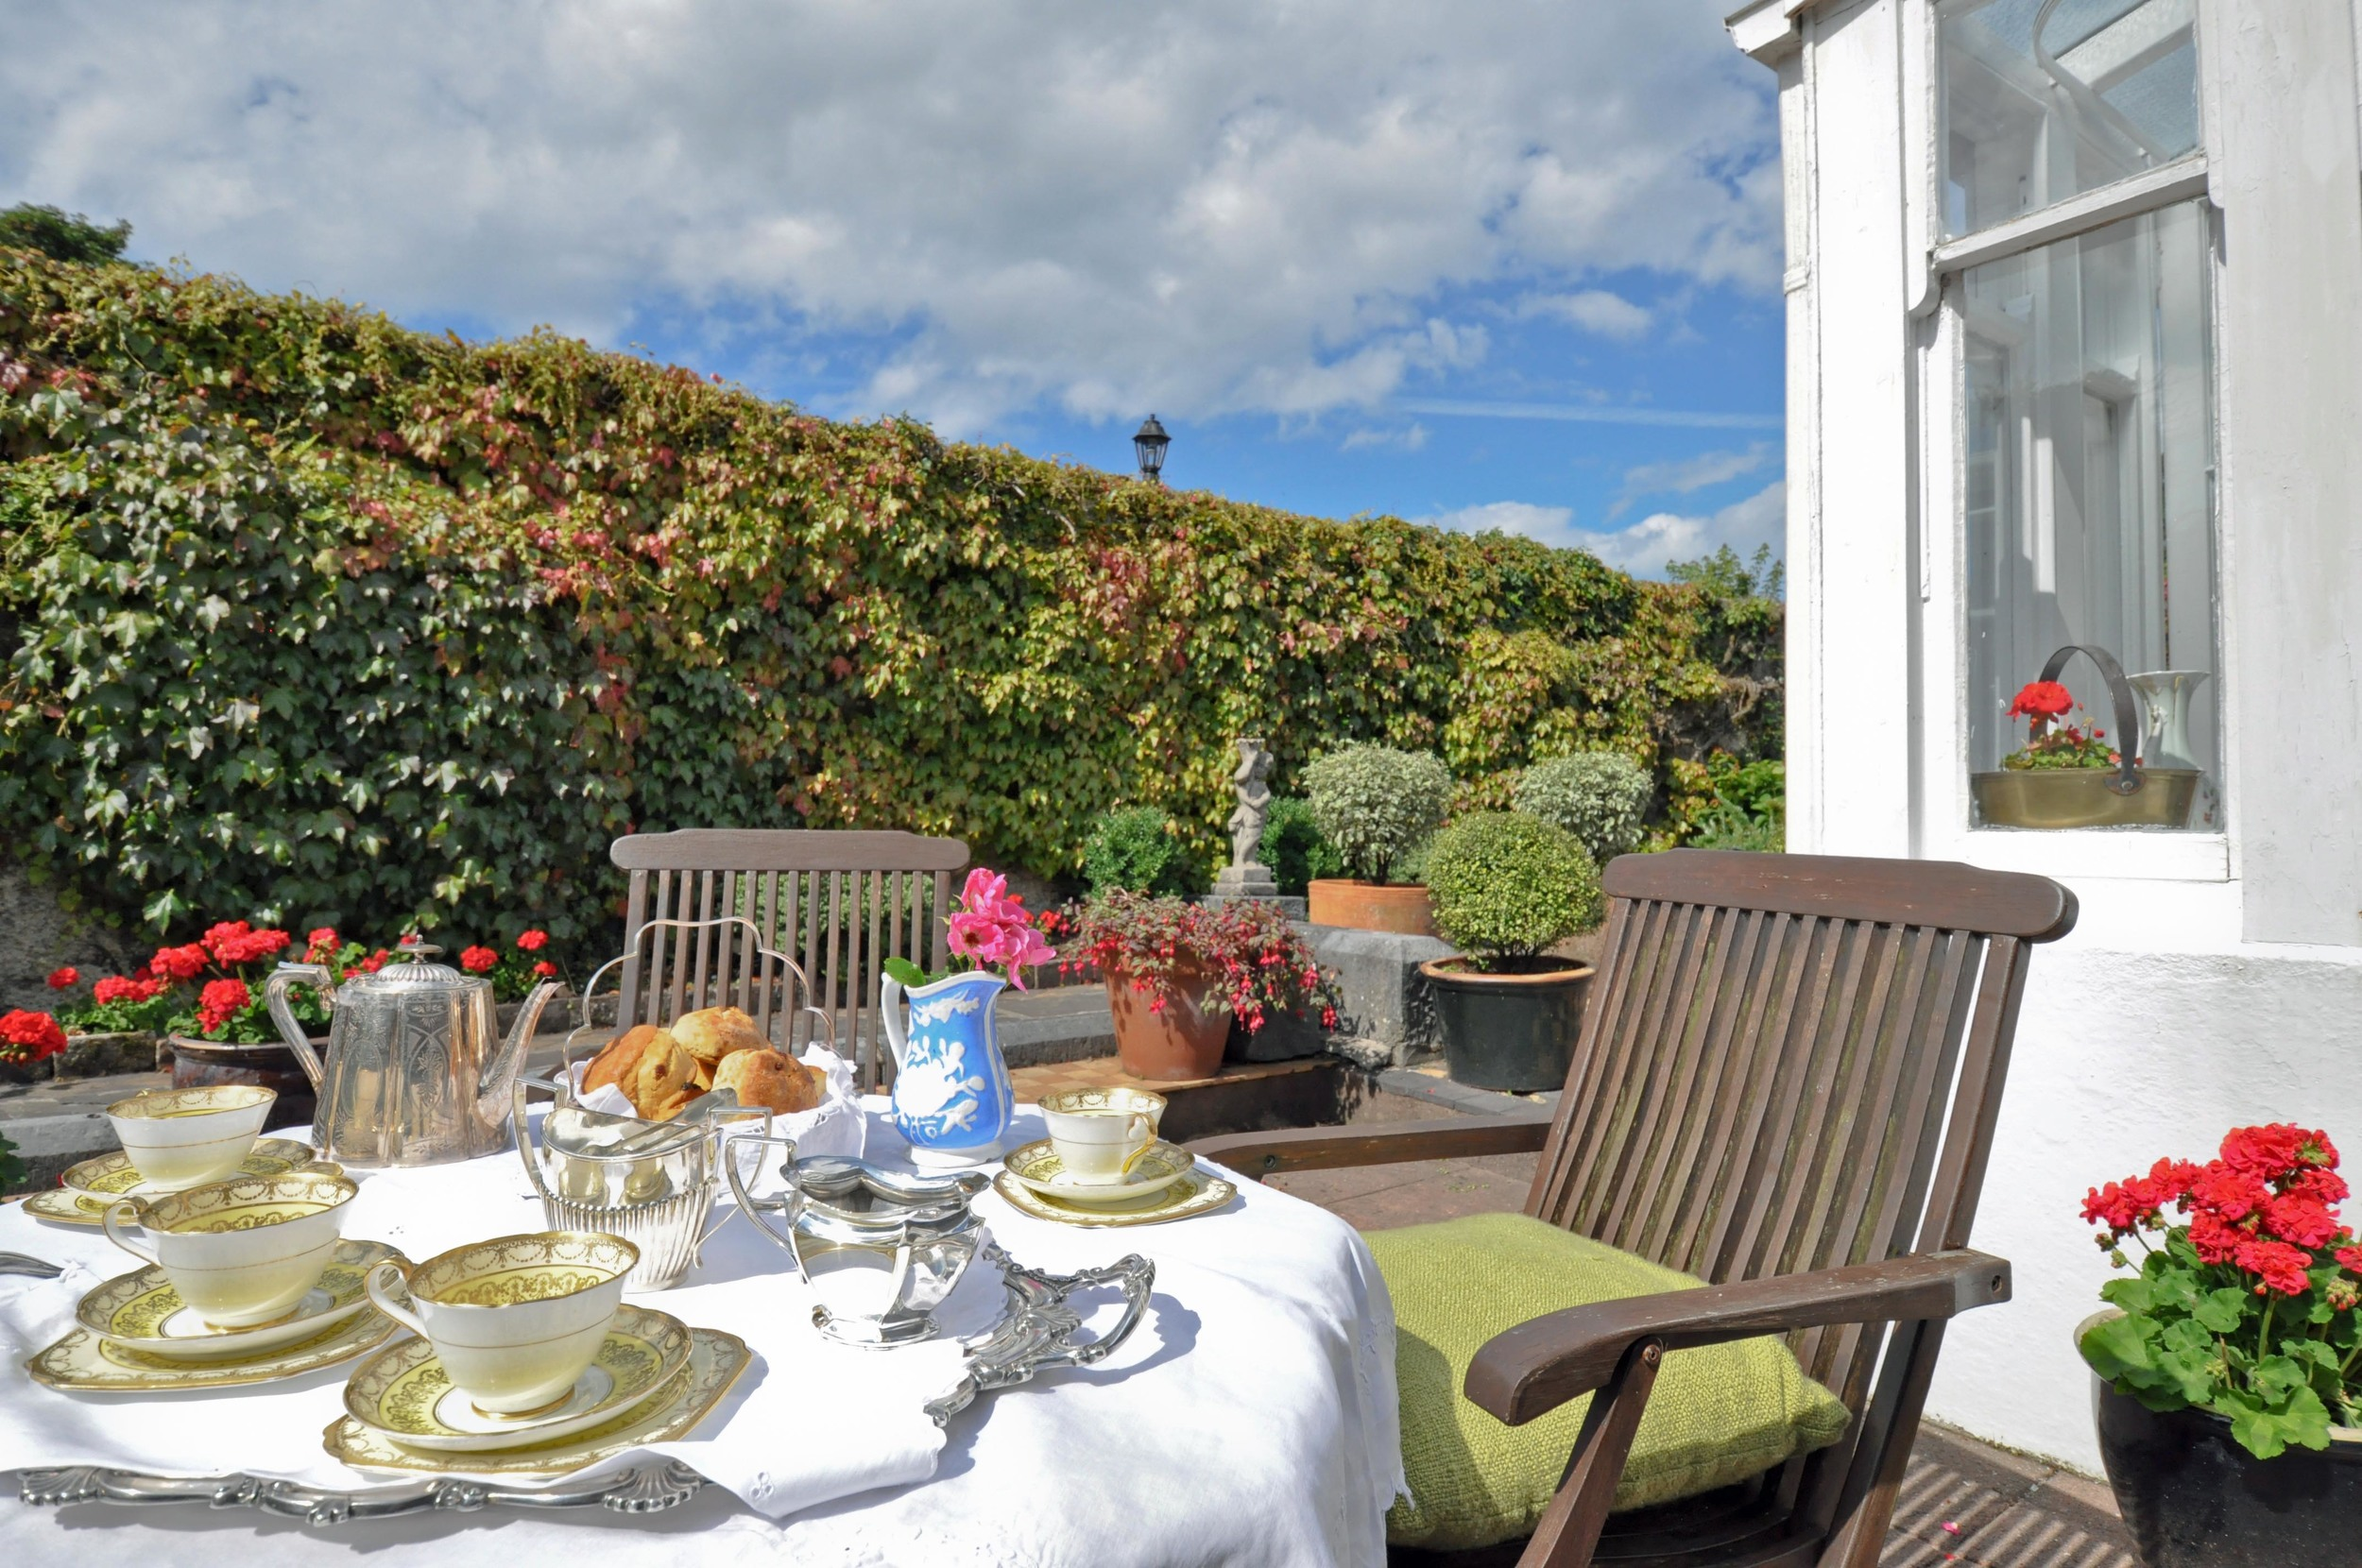 High Tea in outdoor private gardens Galway